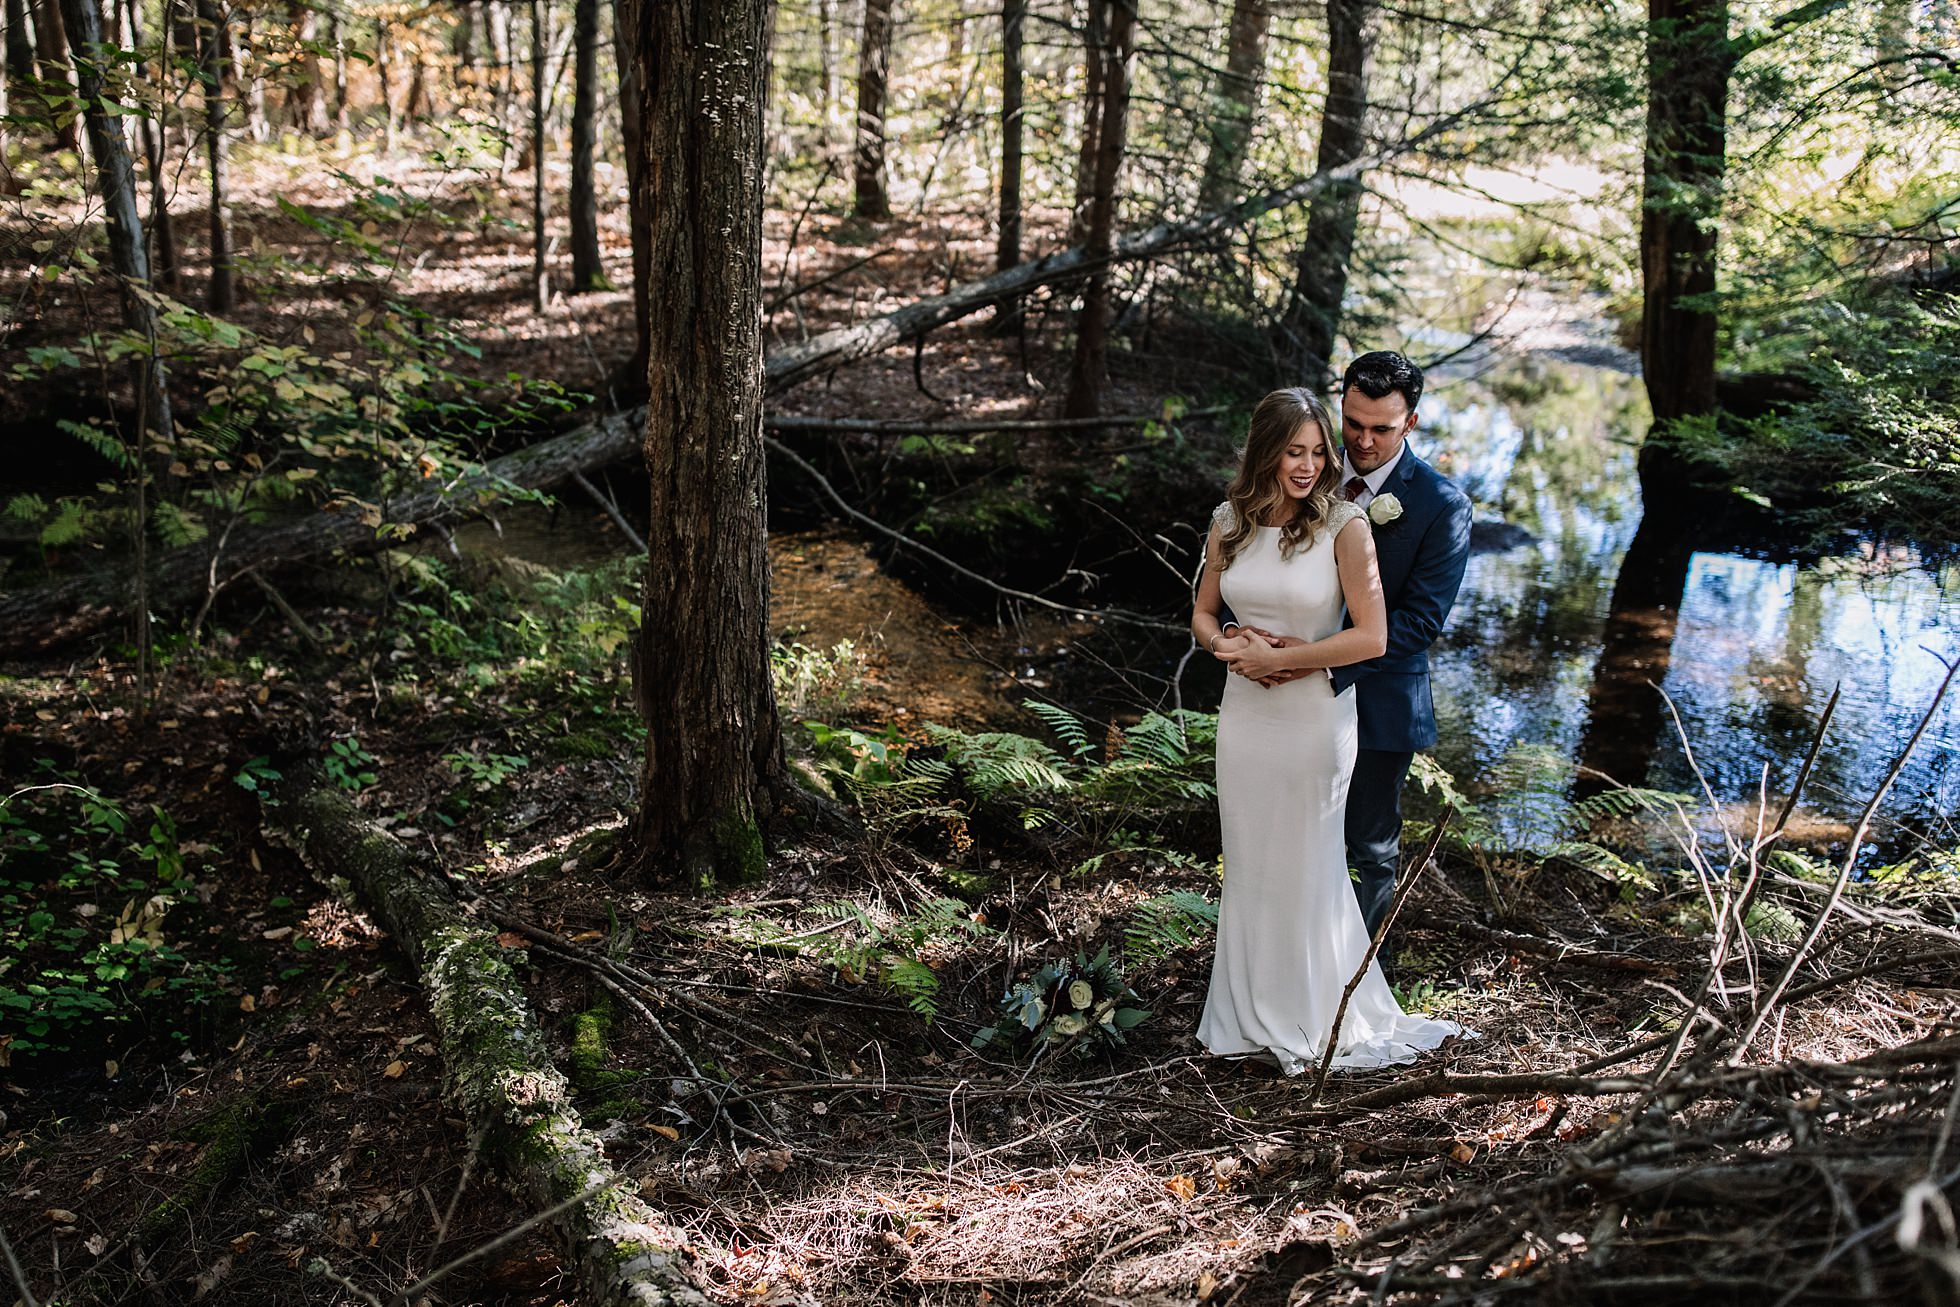 Intimate Outdoor Mountain Elopement